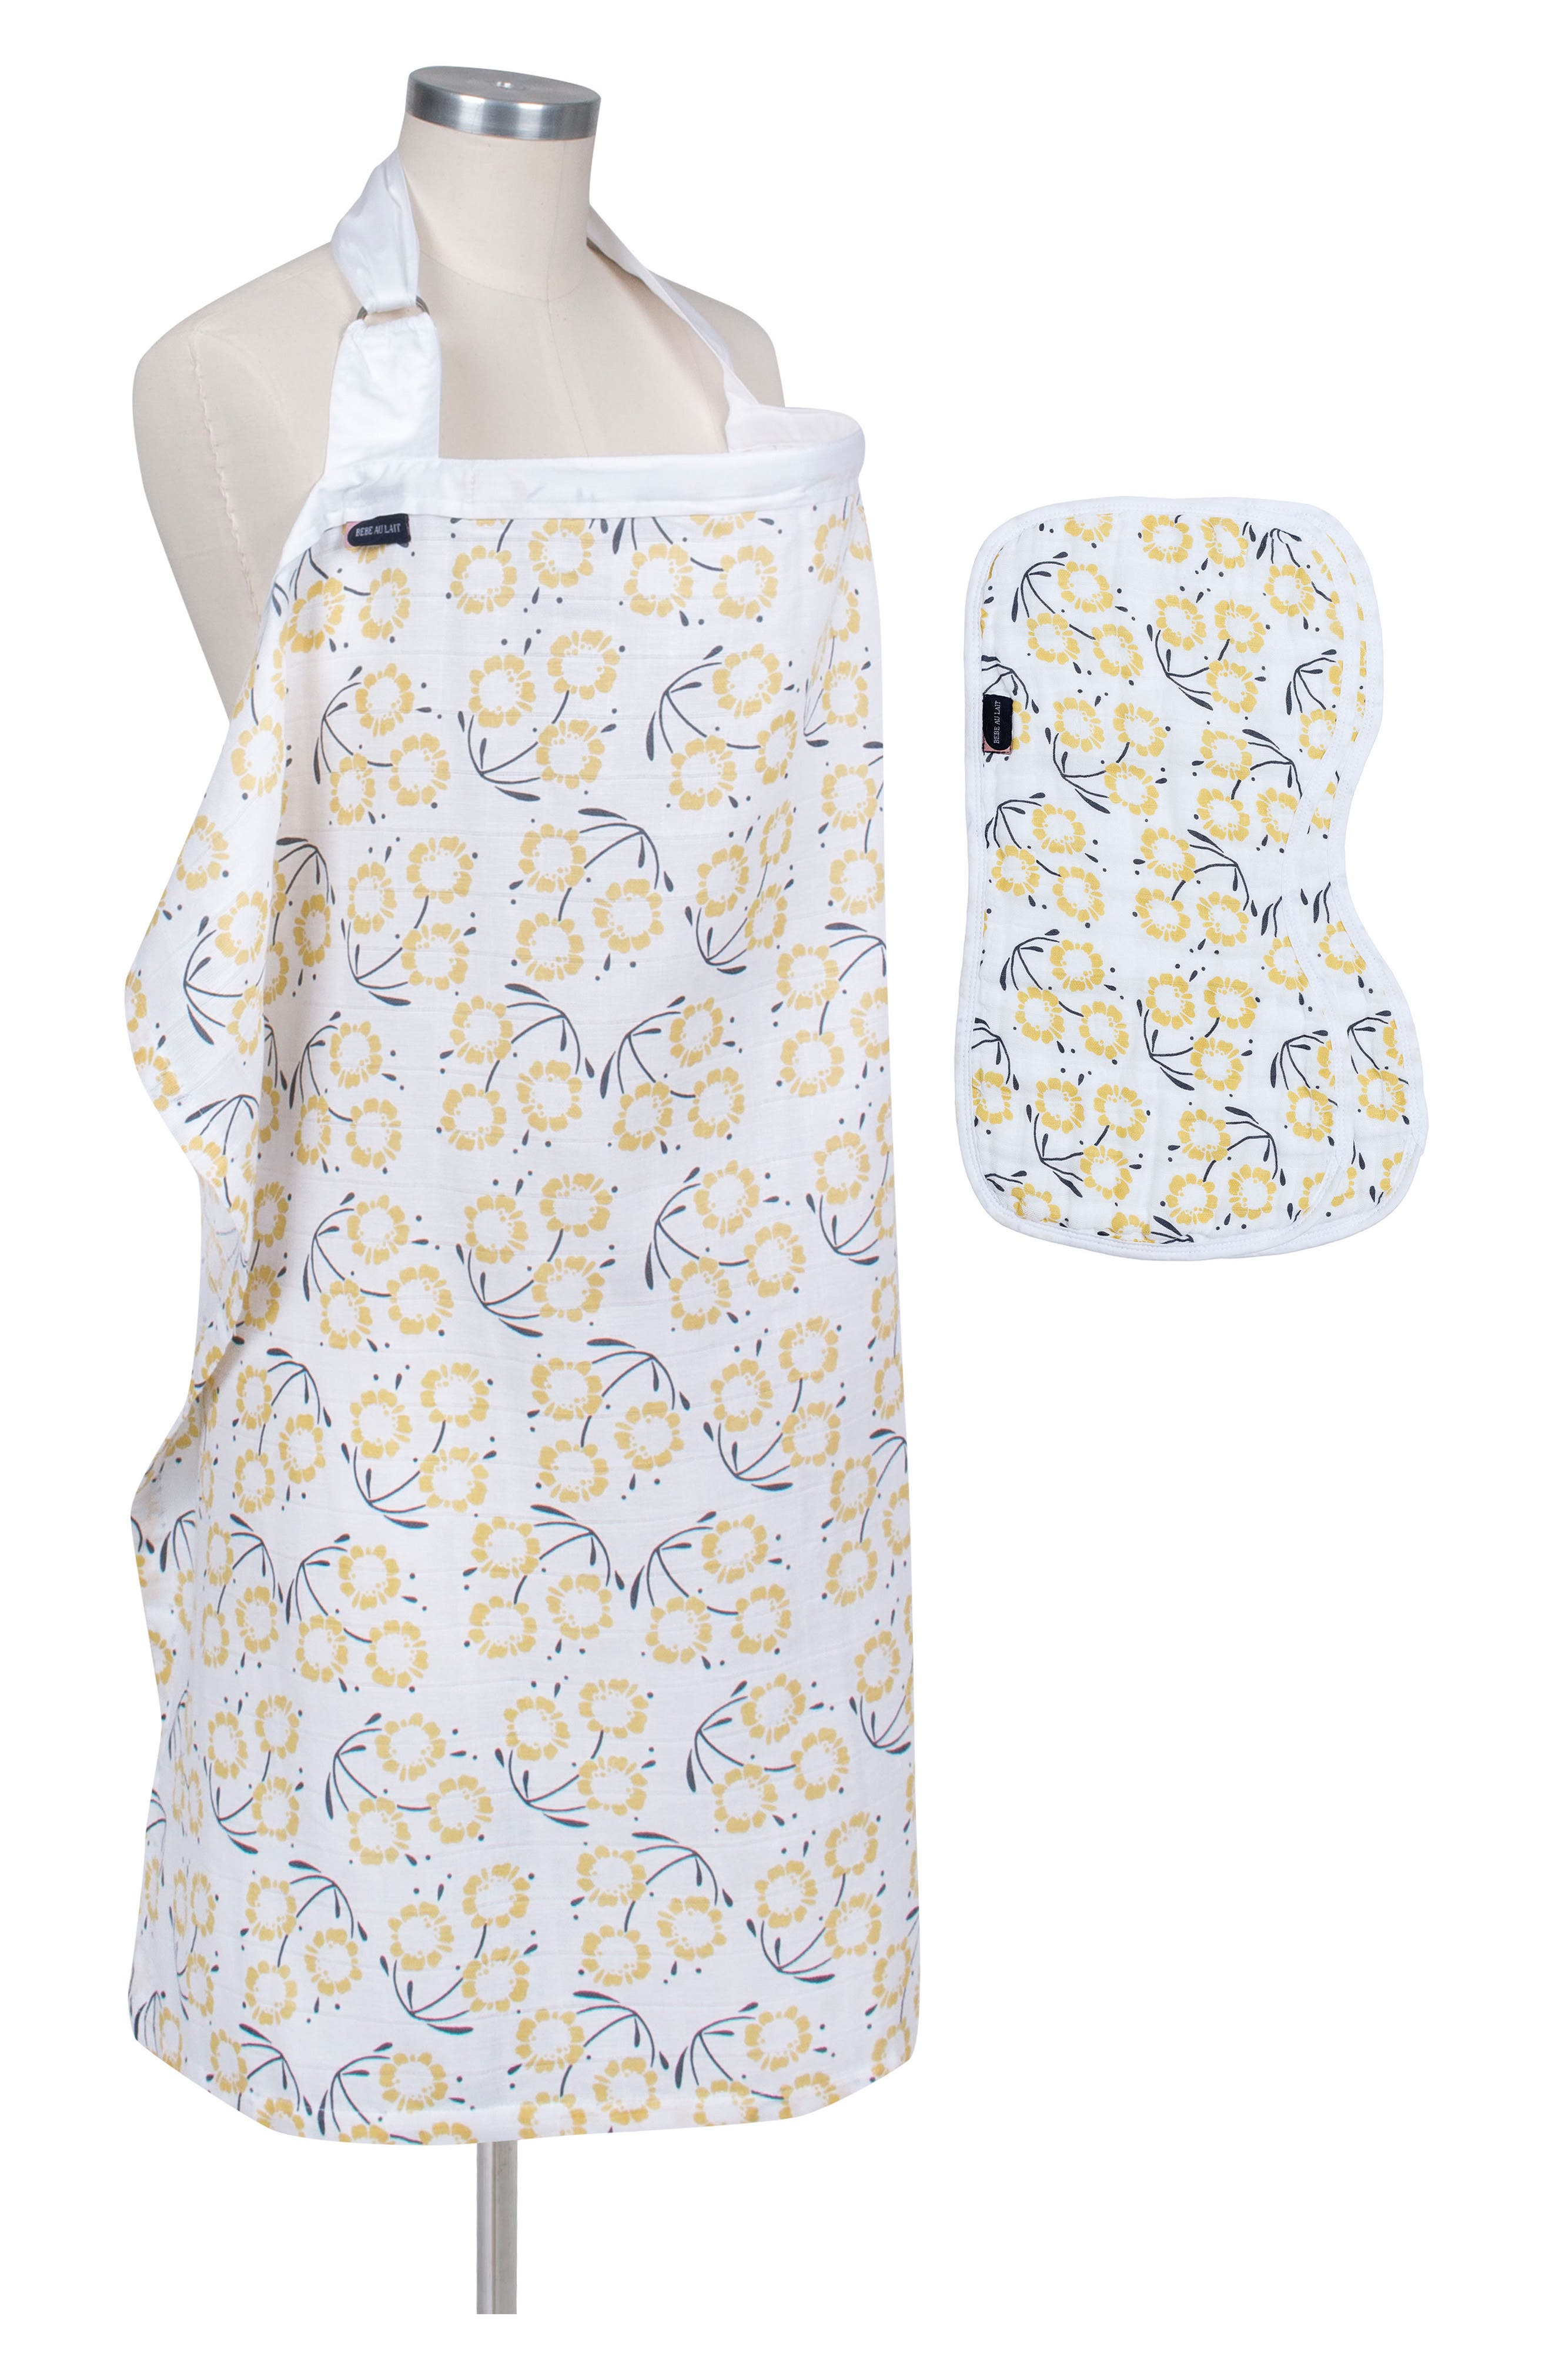 Nursing Cover & Burp Cloth Set,                         Main,                         color, Sorrento